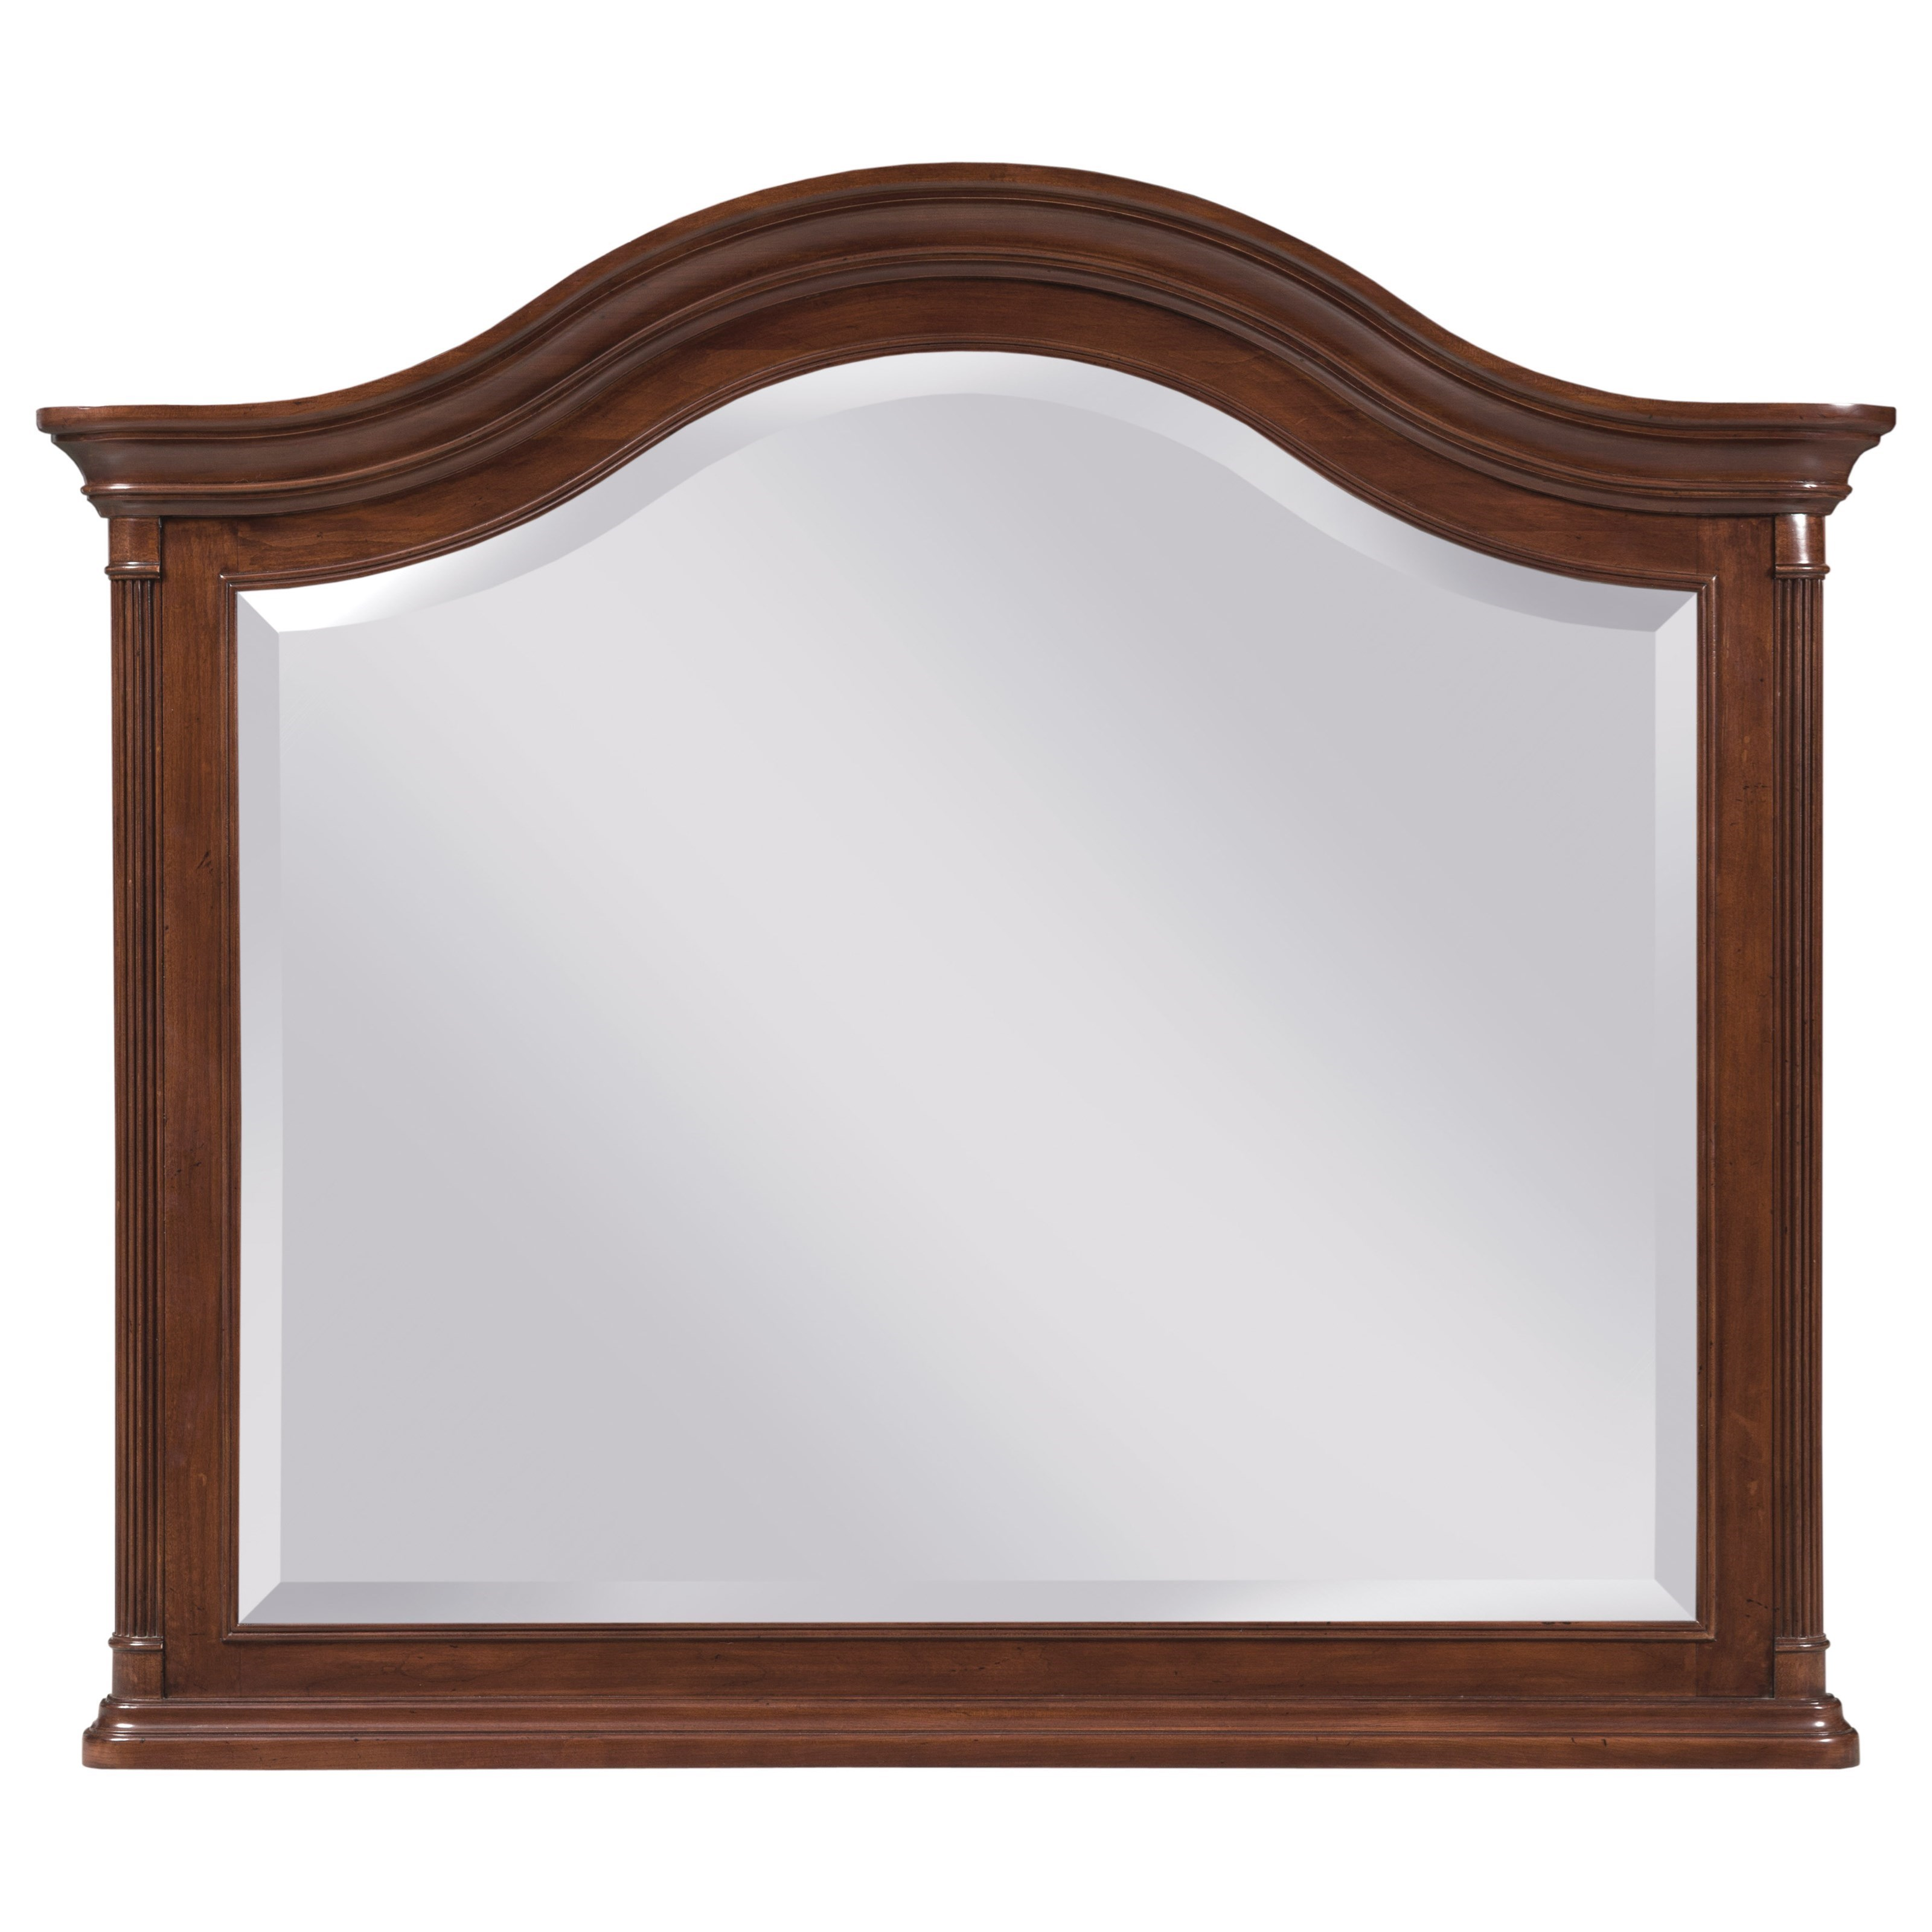 Kincaid Furniture Hadleigh Arched Landscape Mirror - Item Number: 607-020